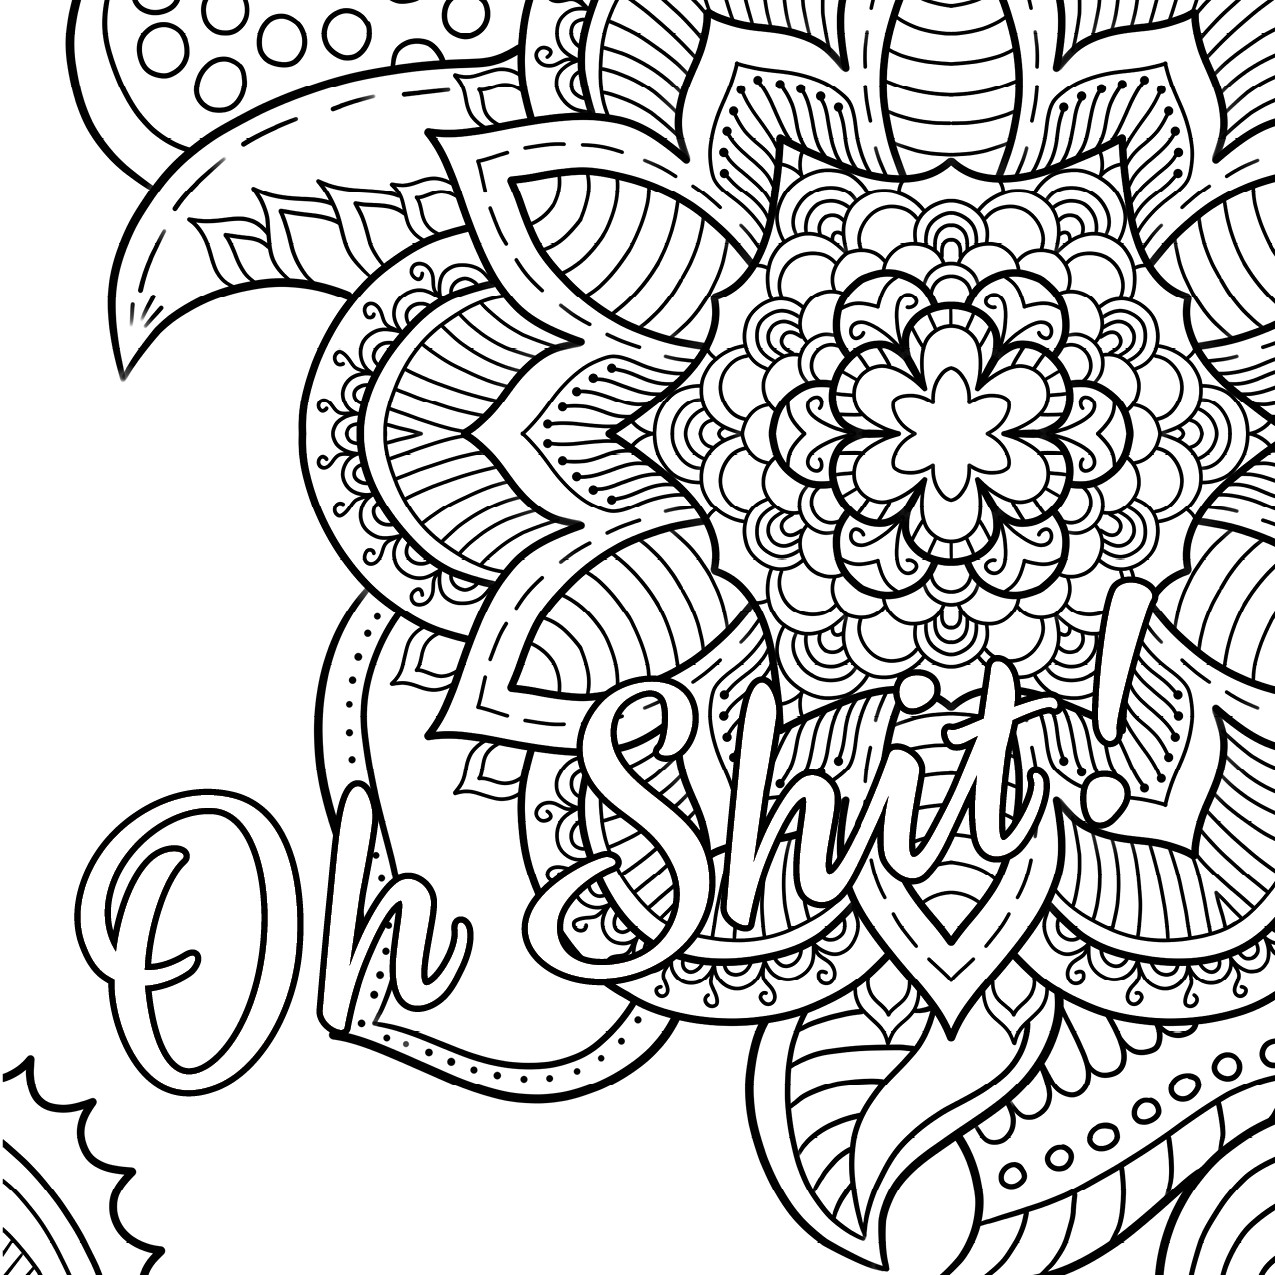 Adult Coloring Pages Swear Words  Oh Shit Free Coloring Page Swear Word Coloring Book